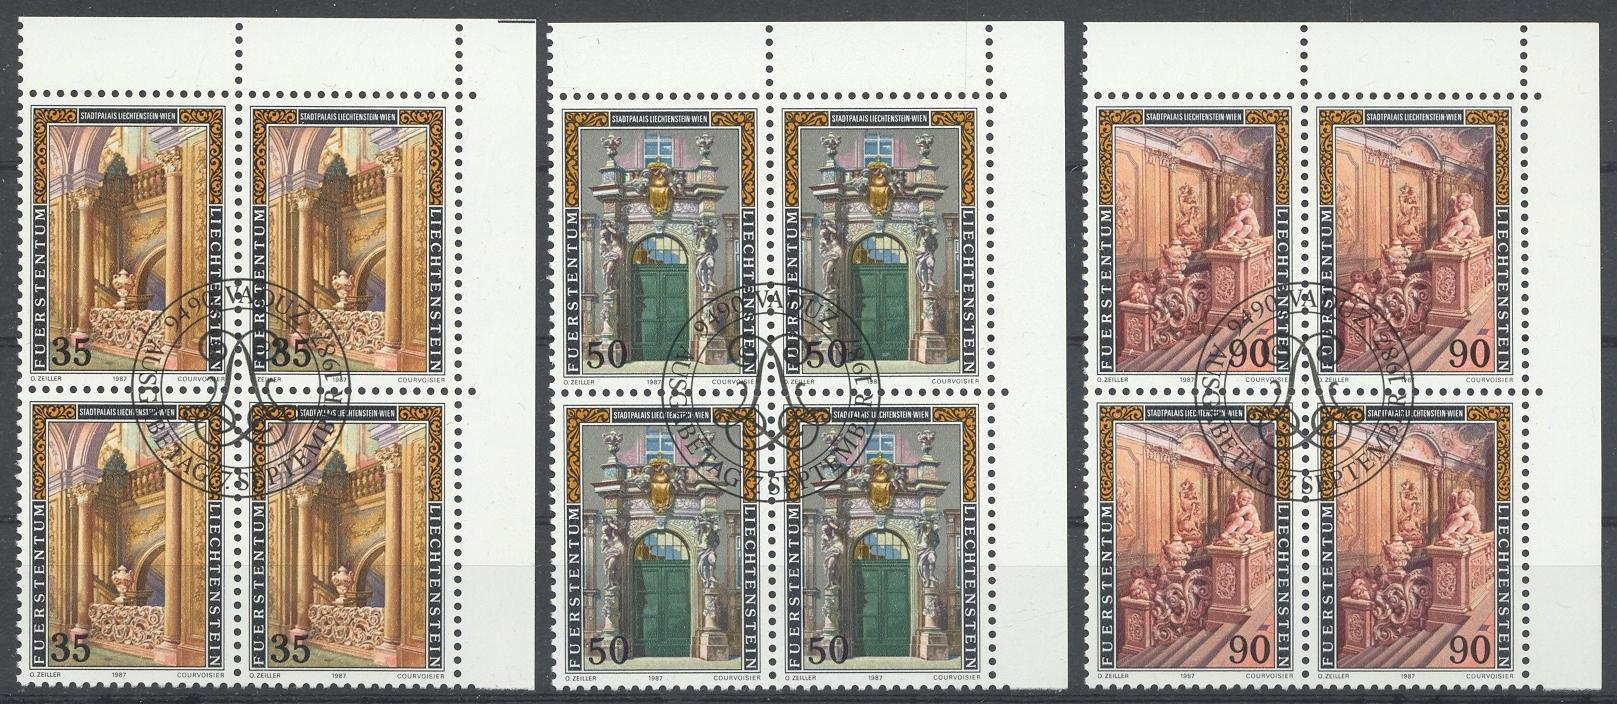 Stamps with Palace from Liechtenstein (image for product #032089)